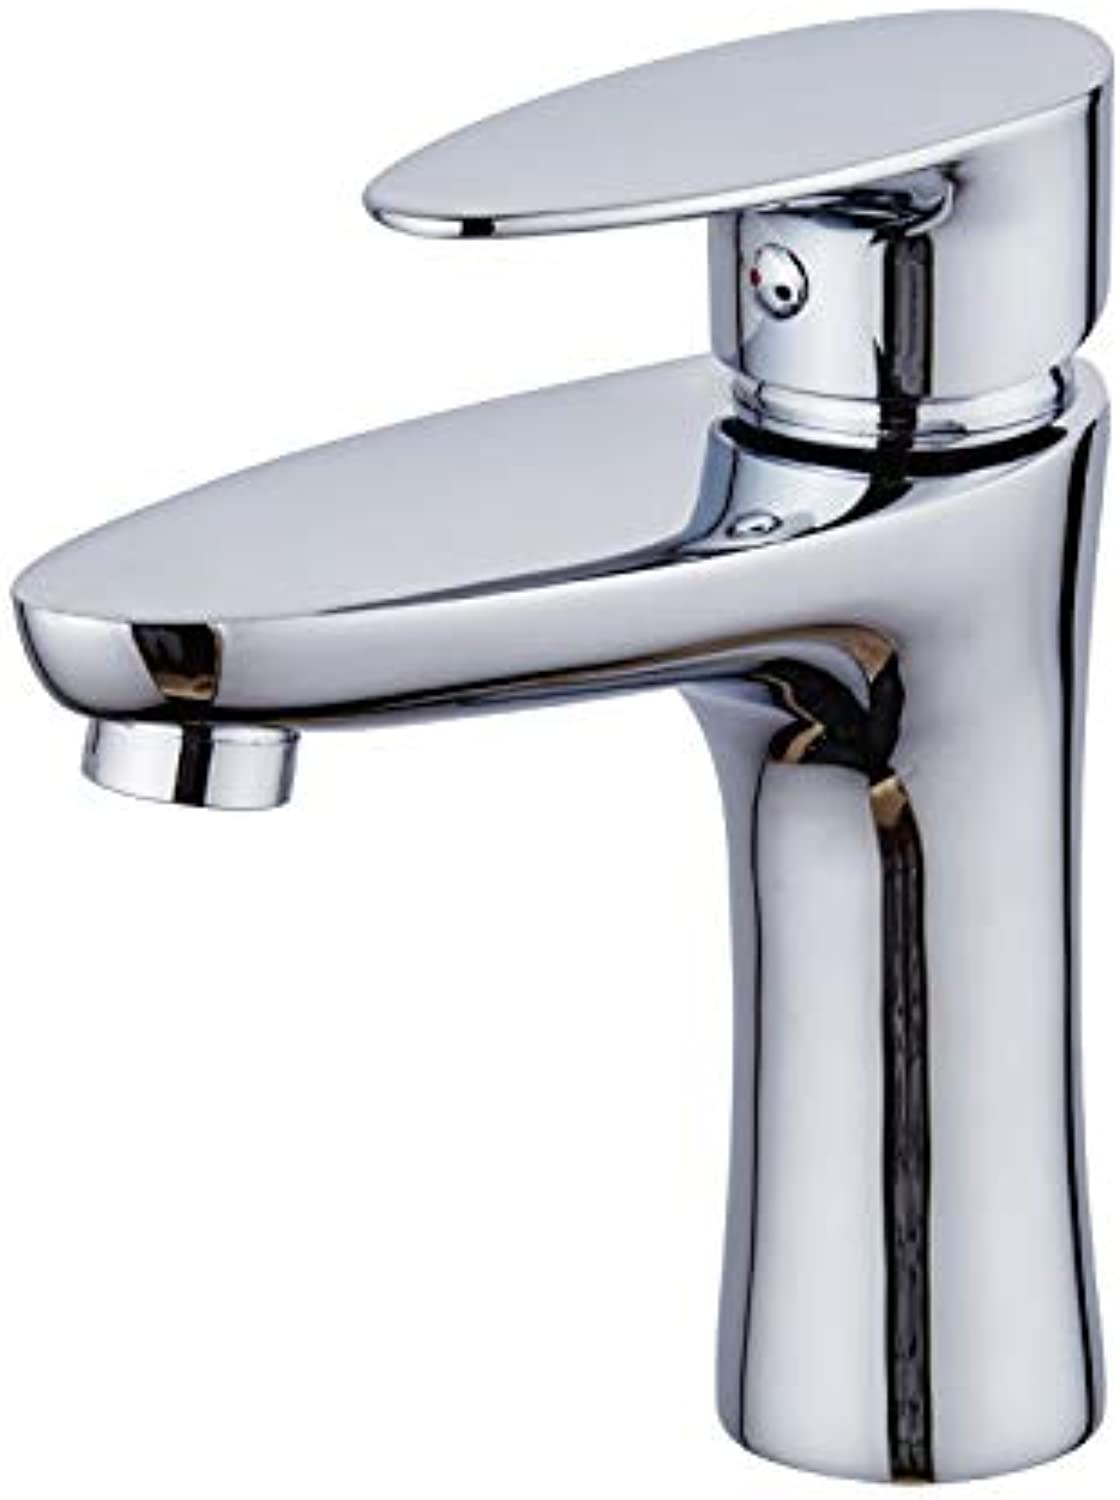 Aimeishi Hot and cold water faucet_Bathroom basin faucet bathroom bathroom hand wash single hole hot and cold wash basin